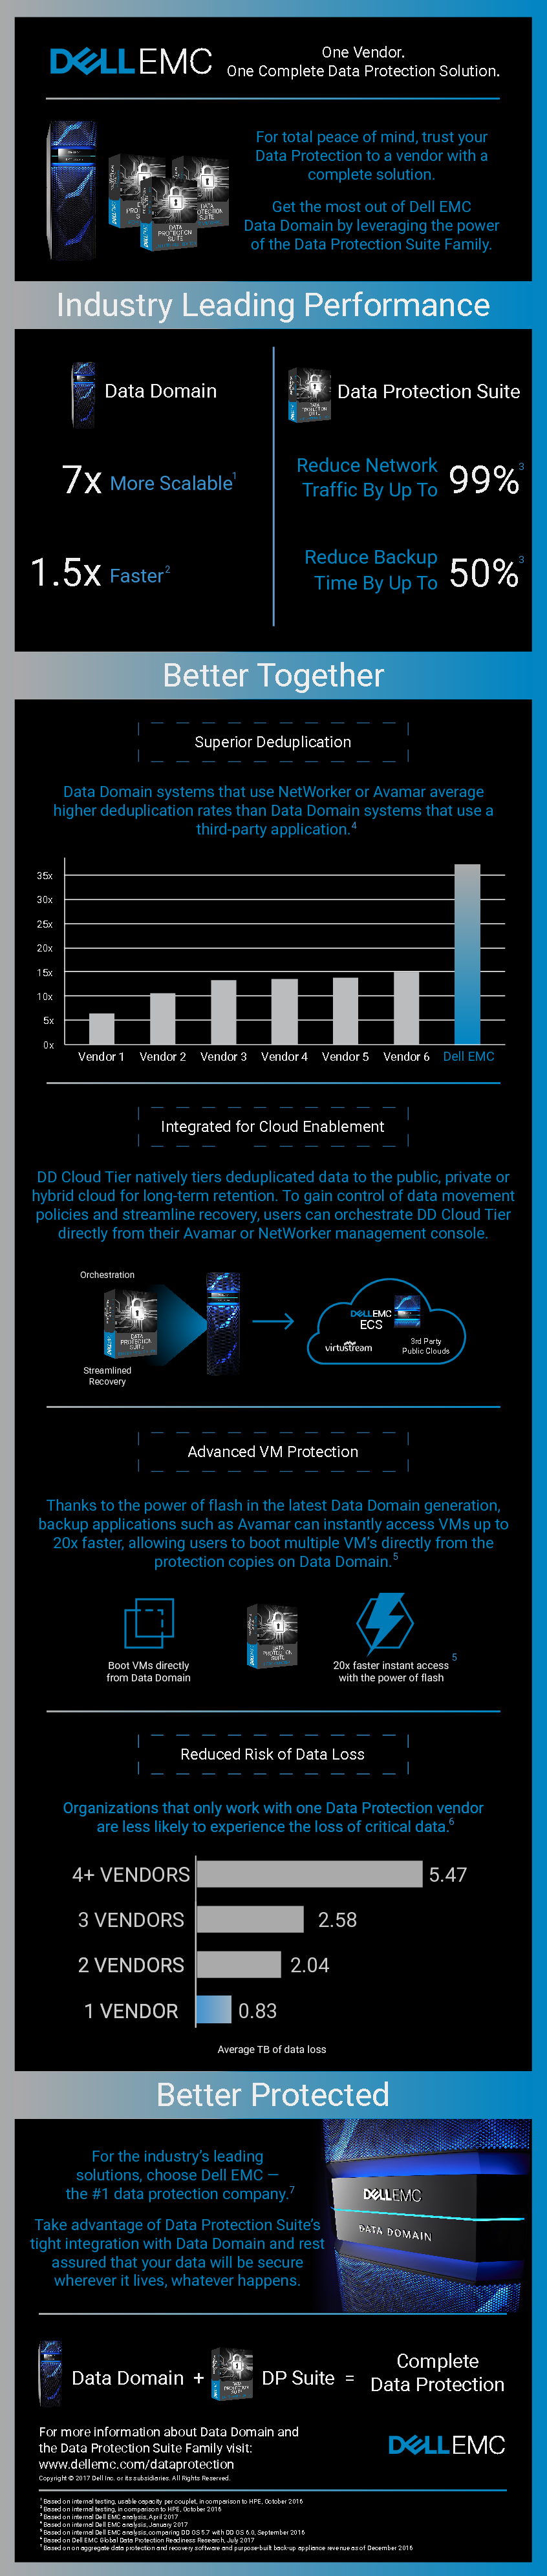 Square cropped thumb original dell emc dd and dp suite infographic